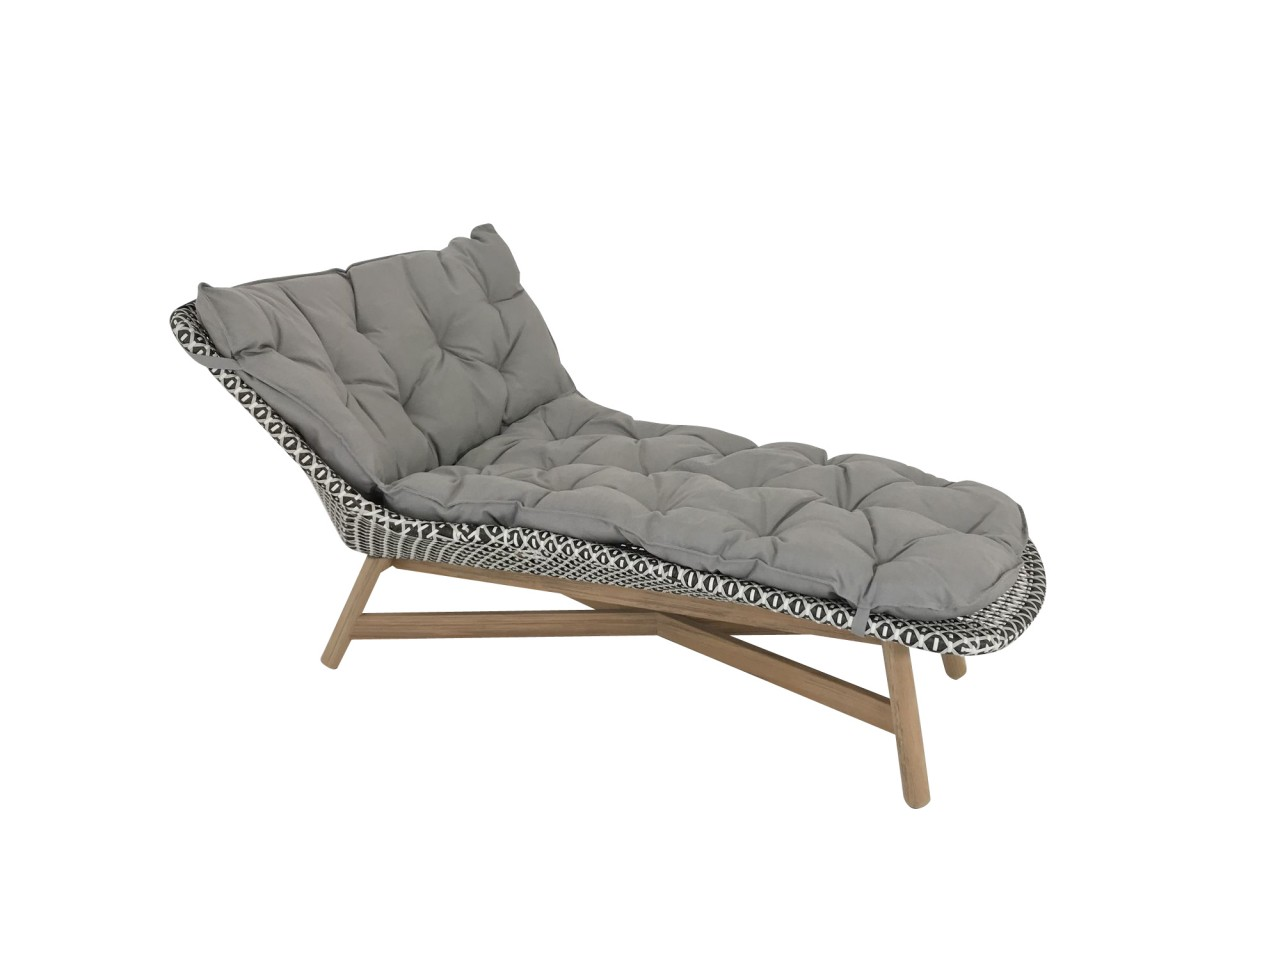 Dedon MBRACE Daybed Liege in der Farbe pepper mit Polsterauflage in cool taupe